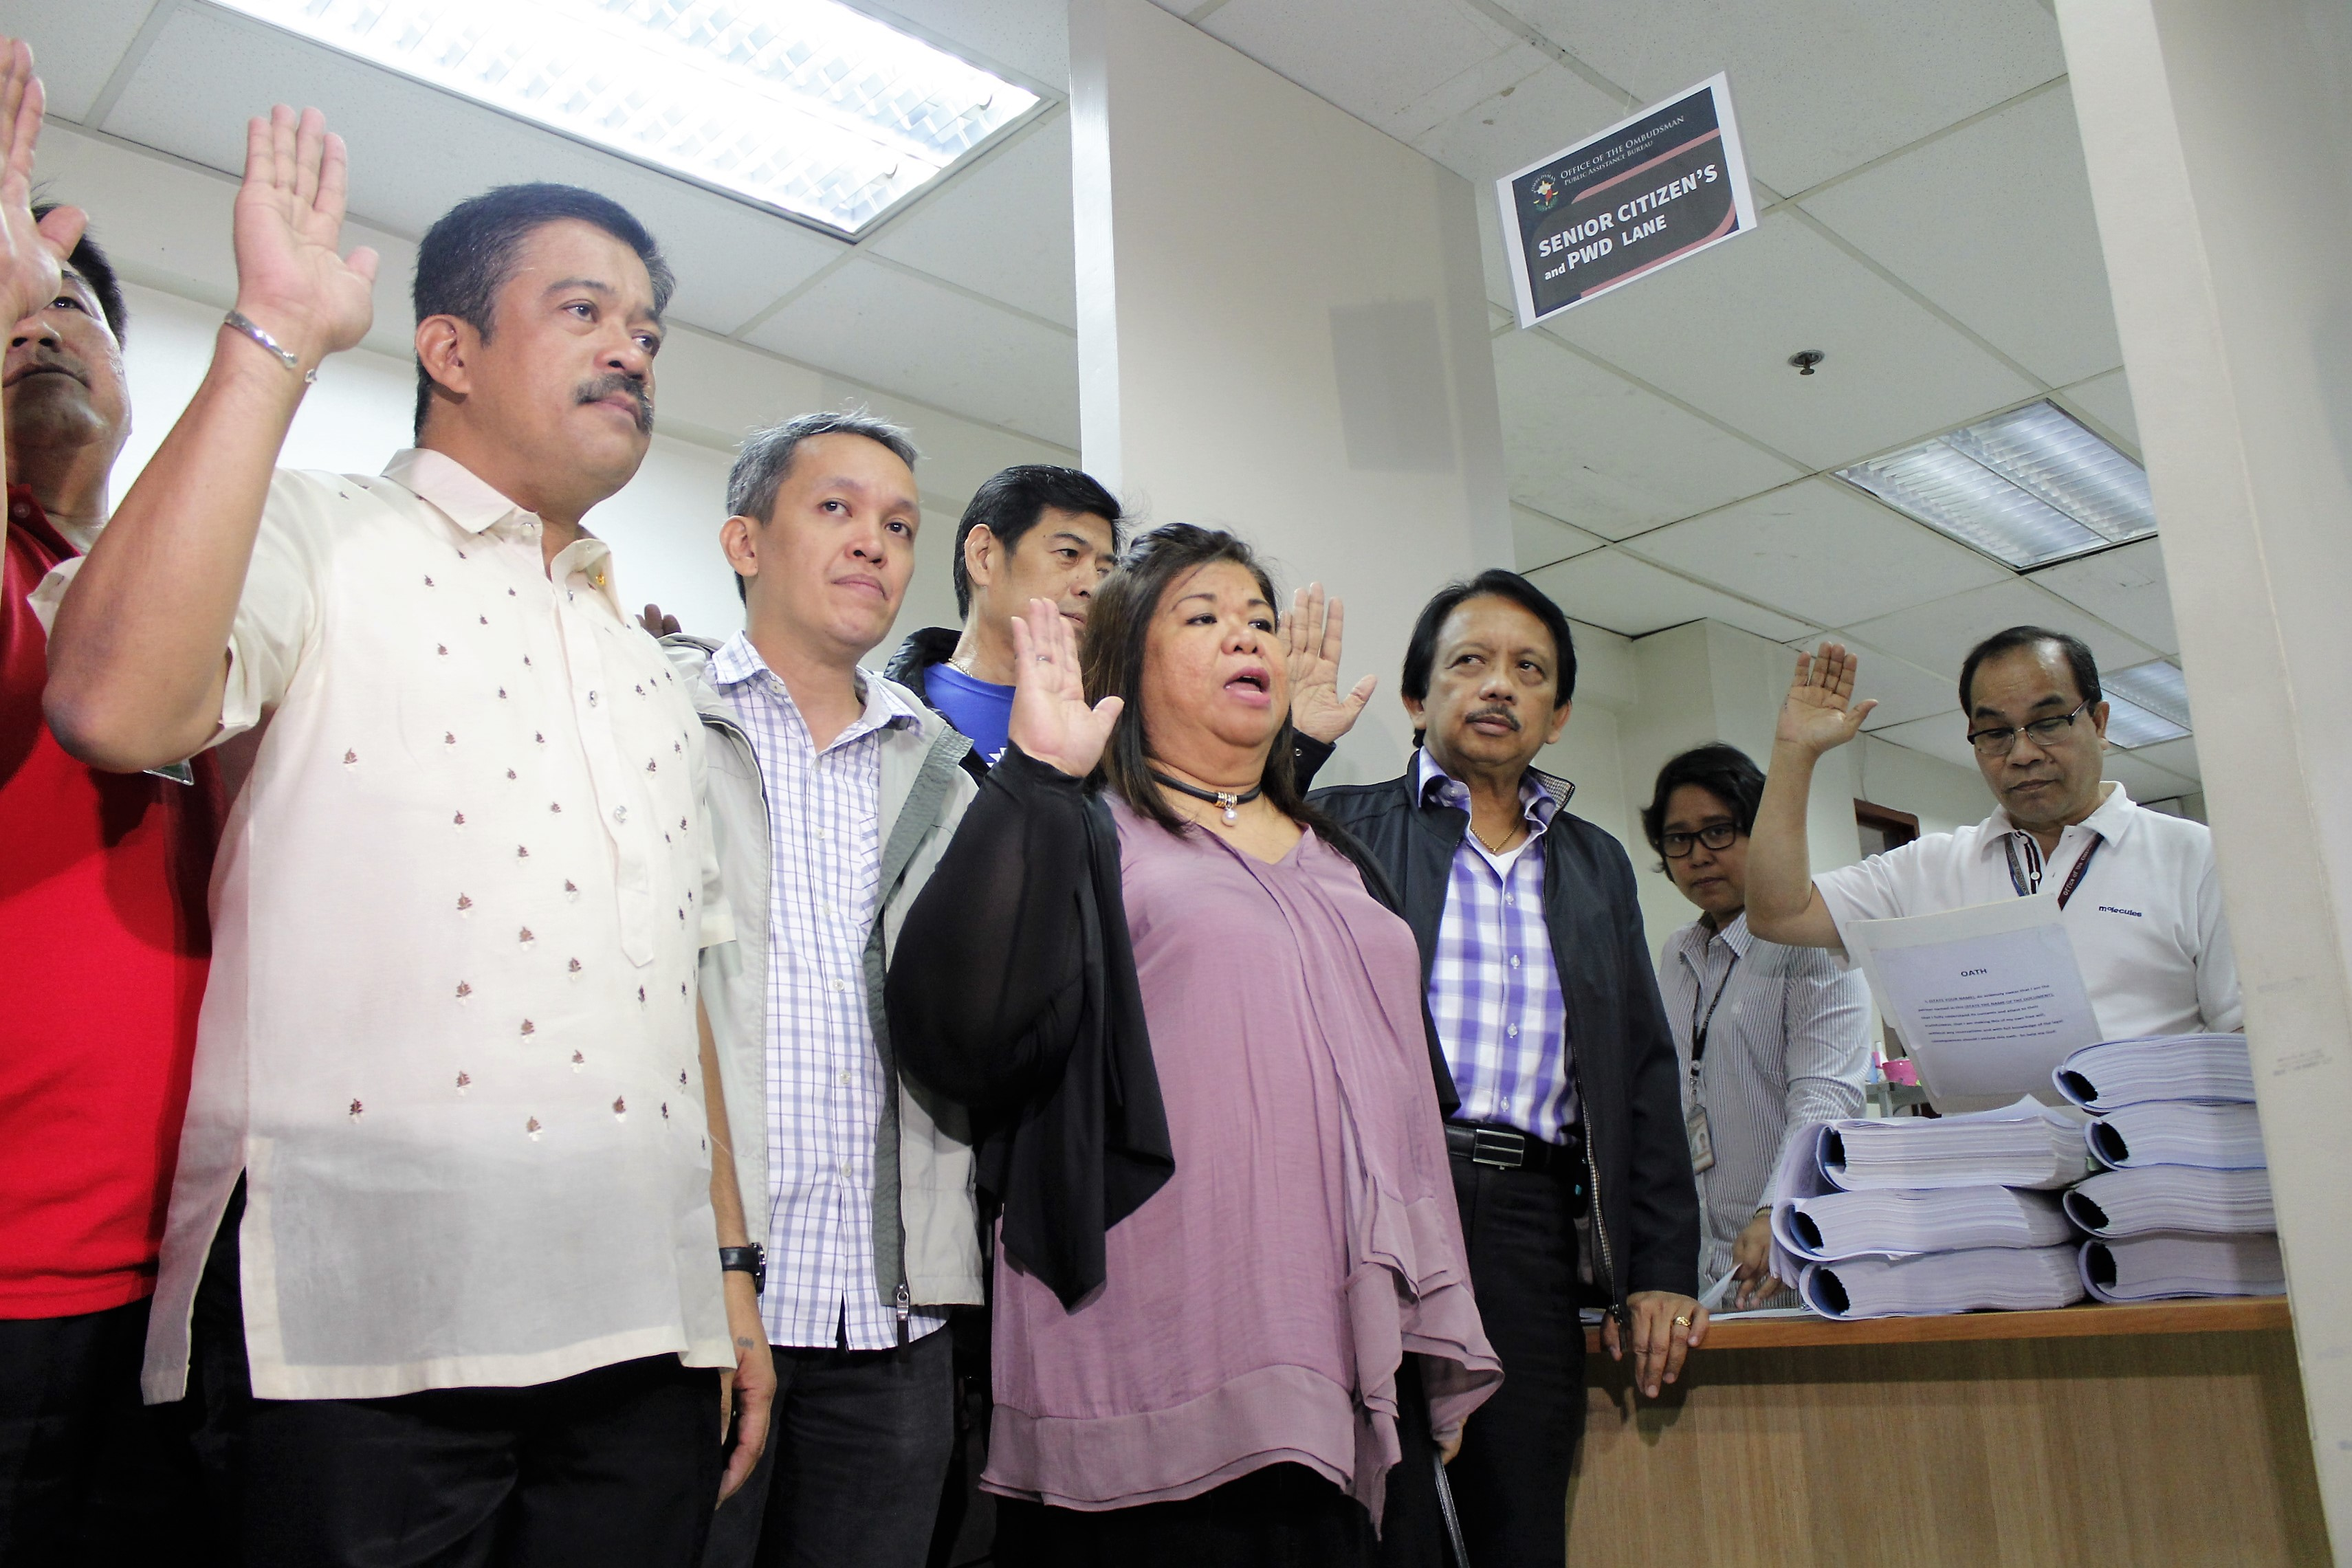 L to R: Bayan Muna Representative Carlos Zarate, Martin Diño of VACC (partly hidden) Bayan Secretary-General Renato Reyes Jr. and Mae Paner, and VACC chairman Dante Jimenez state their oath after signing the complaint. (Photo by Karen Ann Macalalad/Bulatlat)